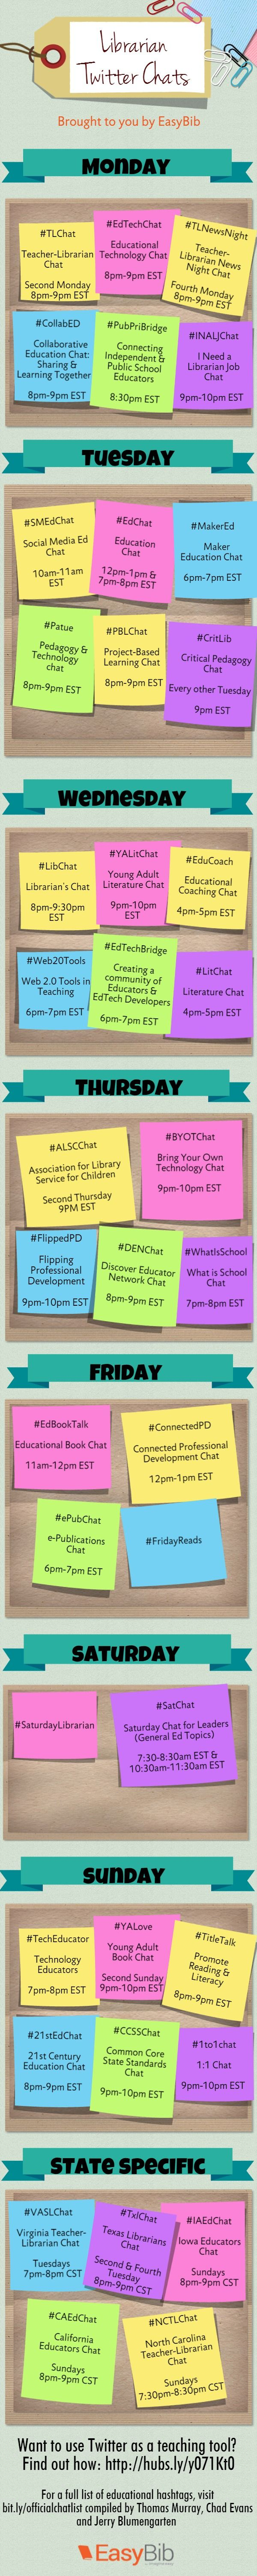 Librarian Twitter Chats | Piktochart Infographic Editor Great to share with all educators!